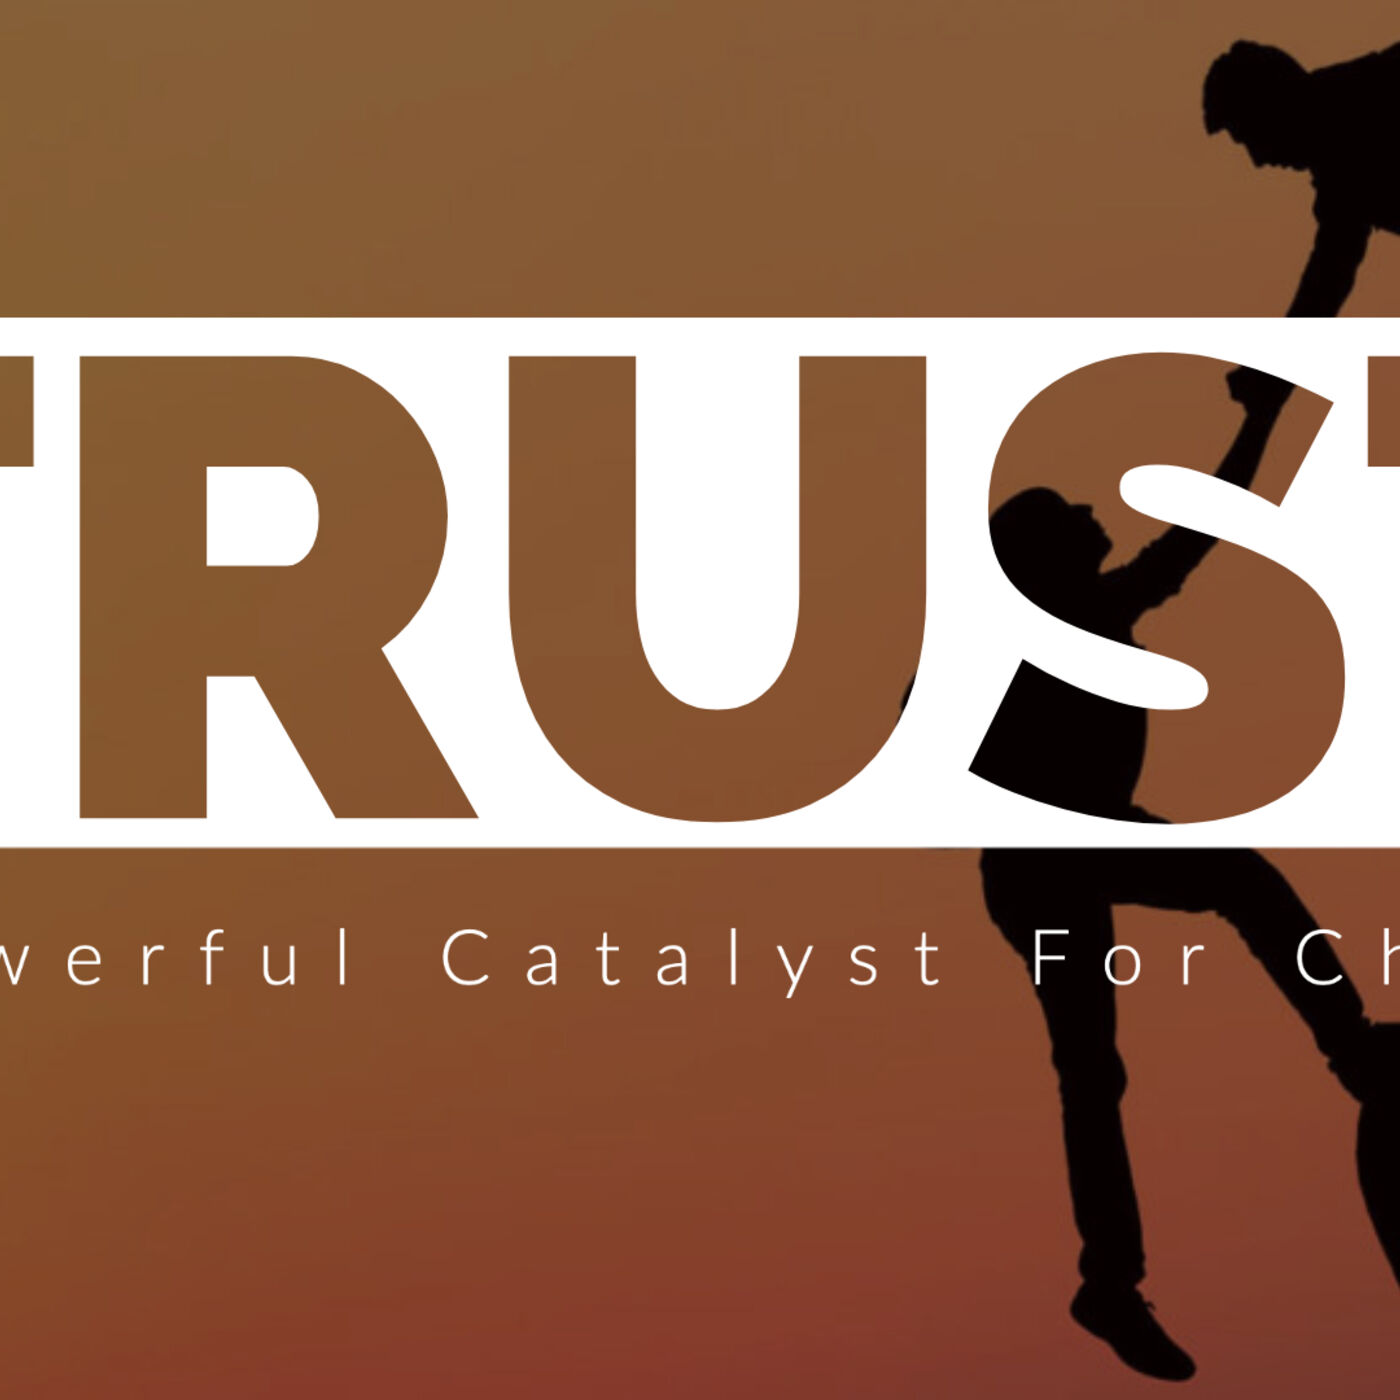 Trust: A Powerful Catalyst for Change